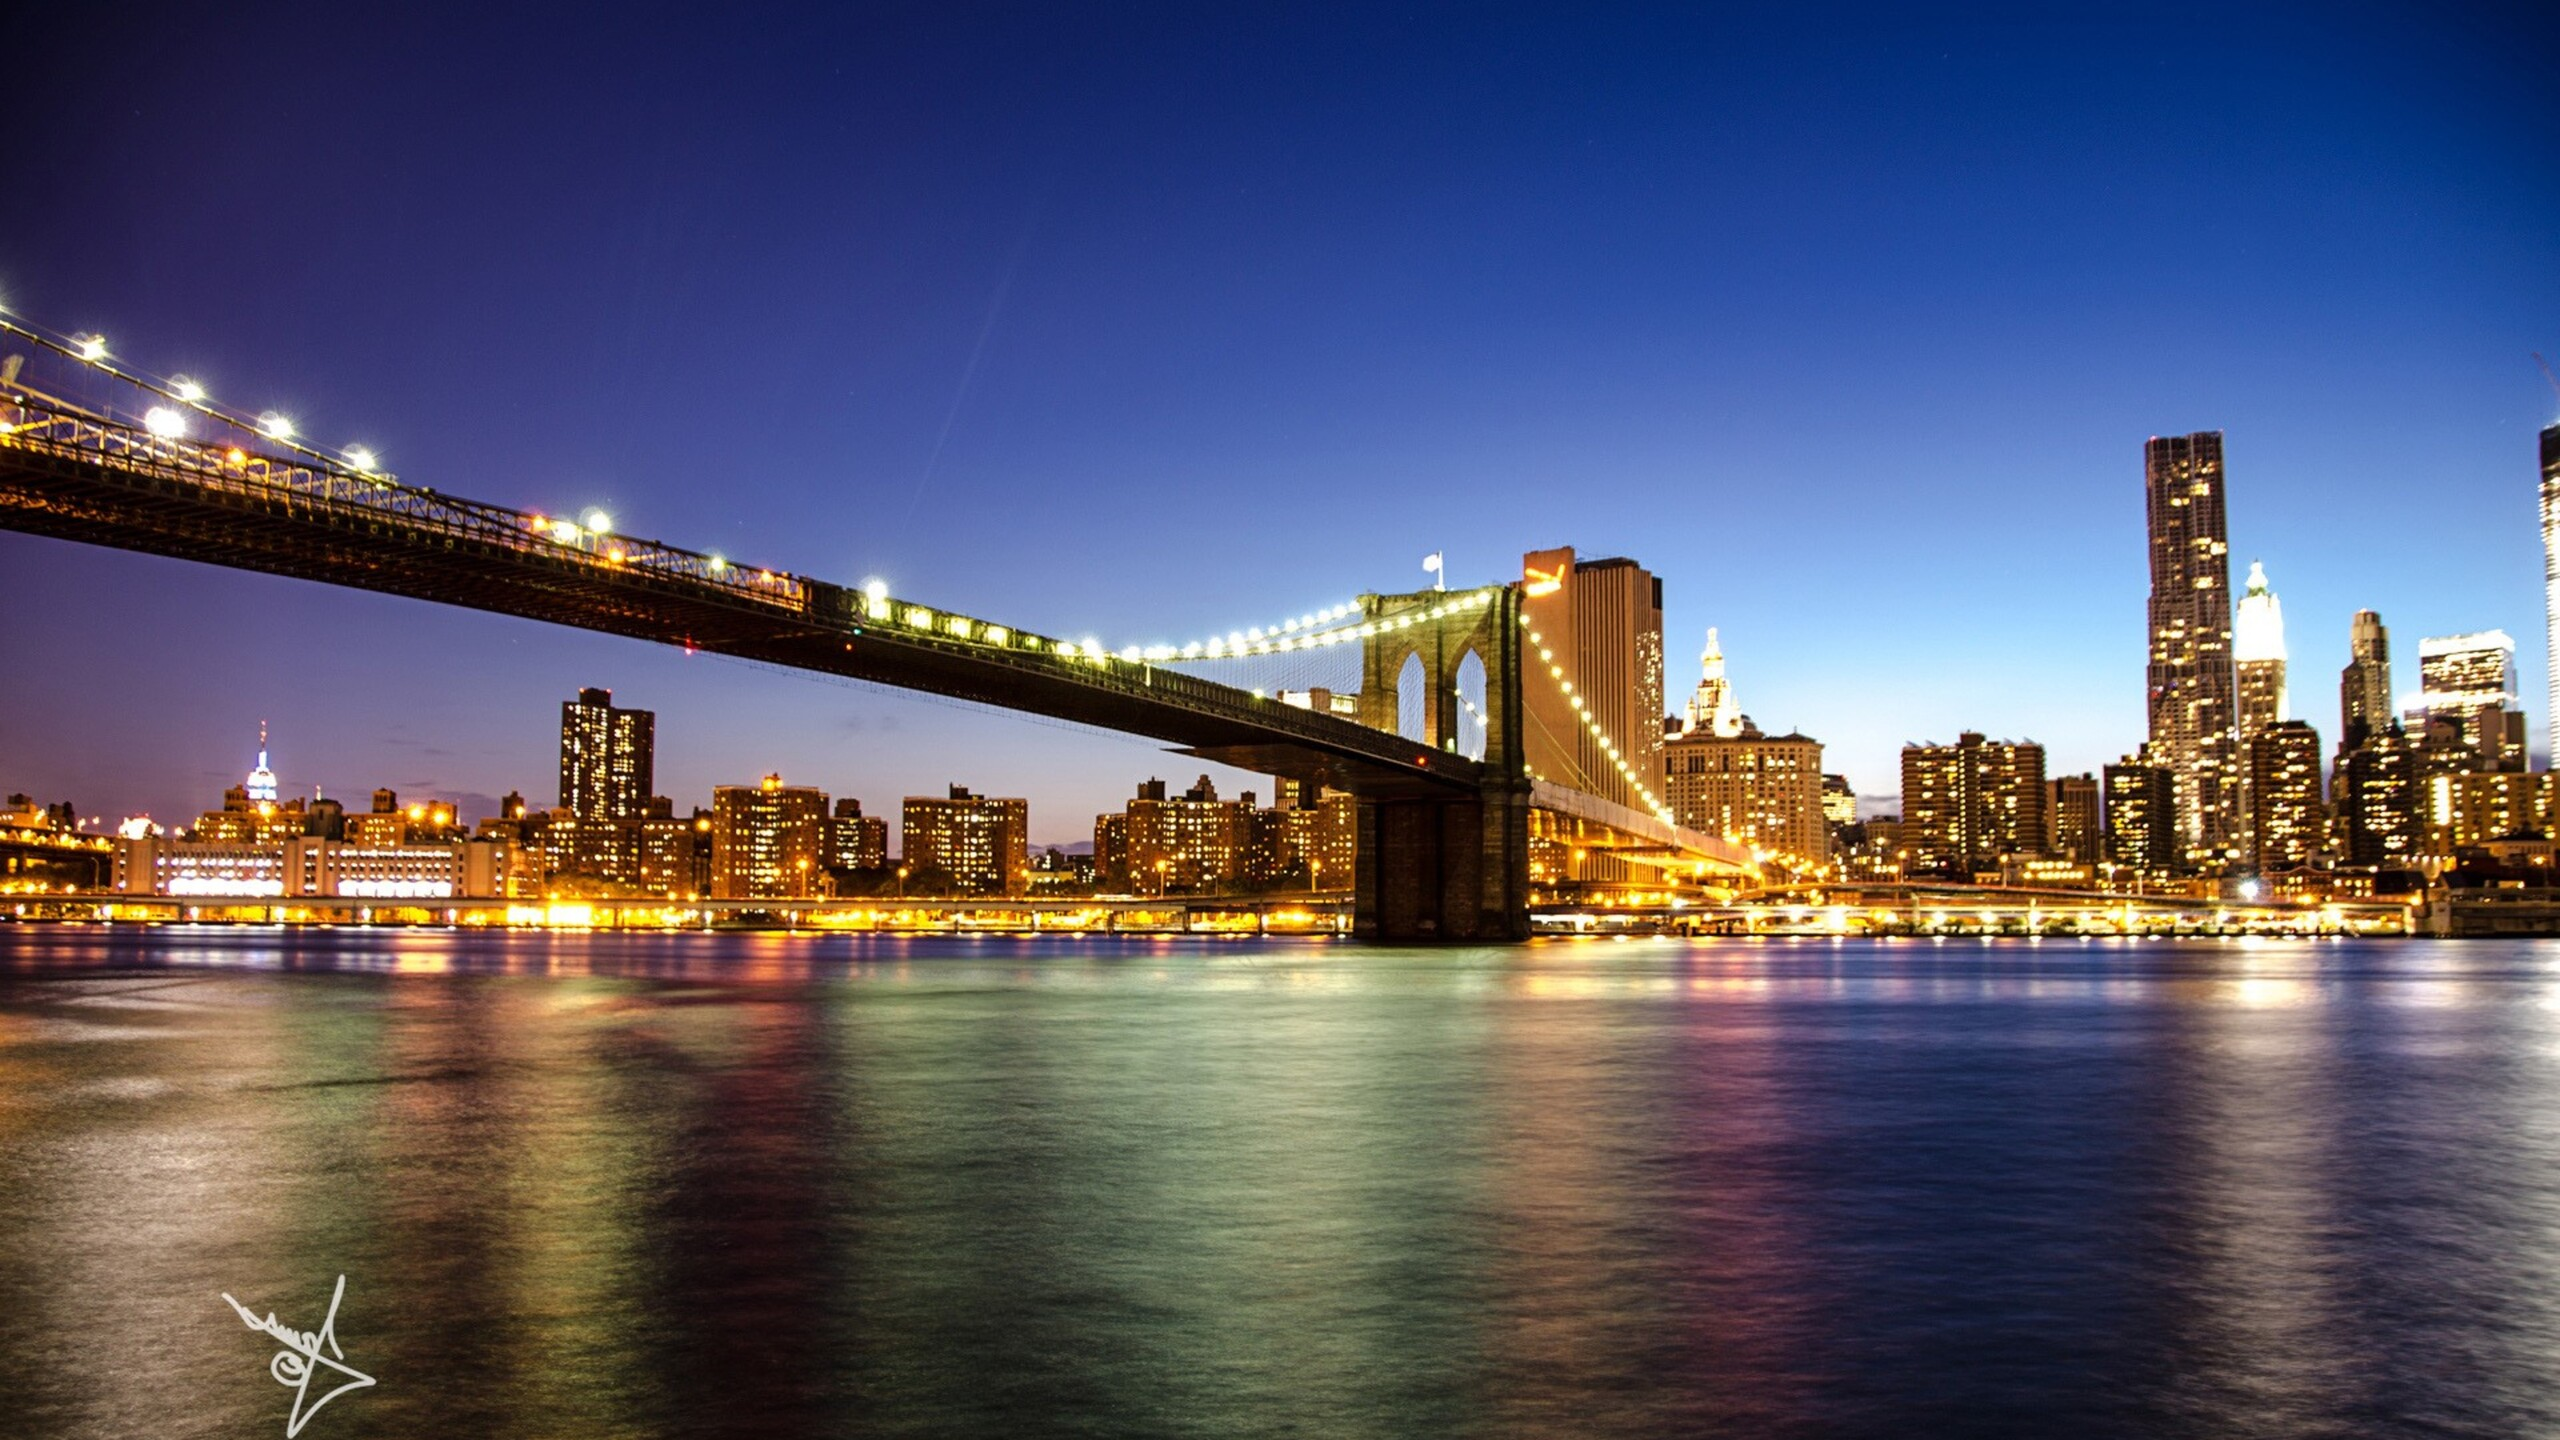 2560x1440 Brooklyn Bridge In New York 1440p Resolution Hd 4k